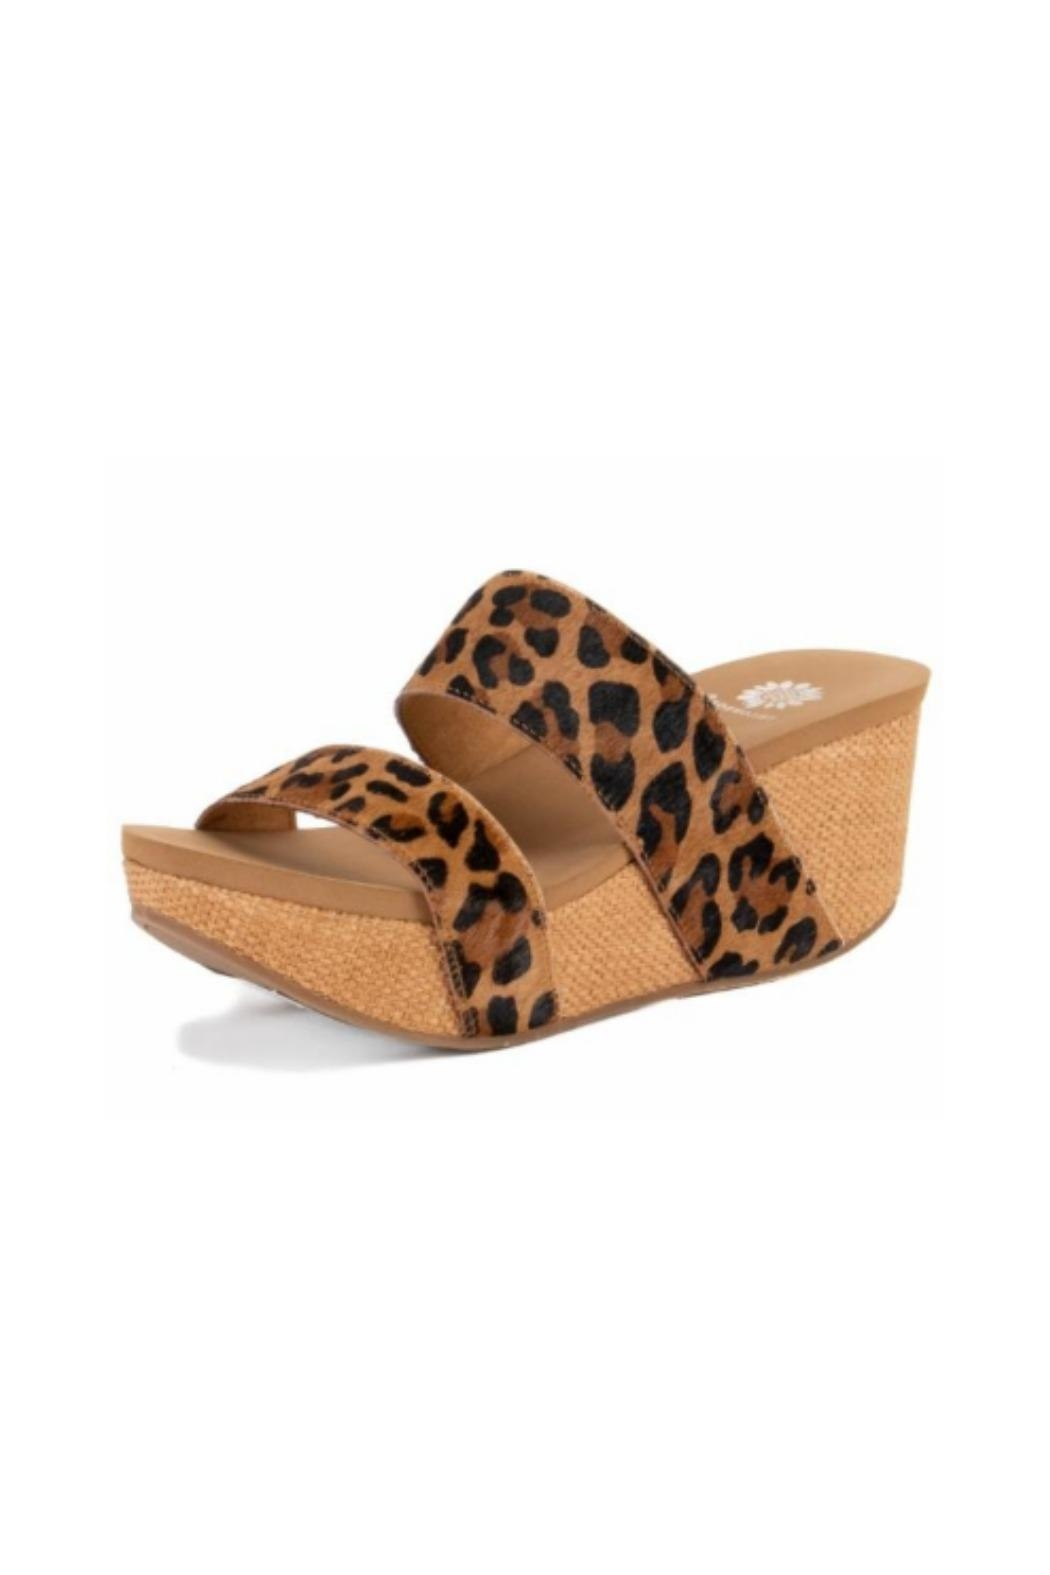 Yellow Box Leopard Wedge from Texas by